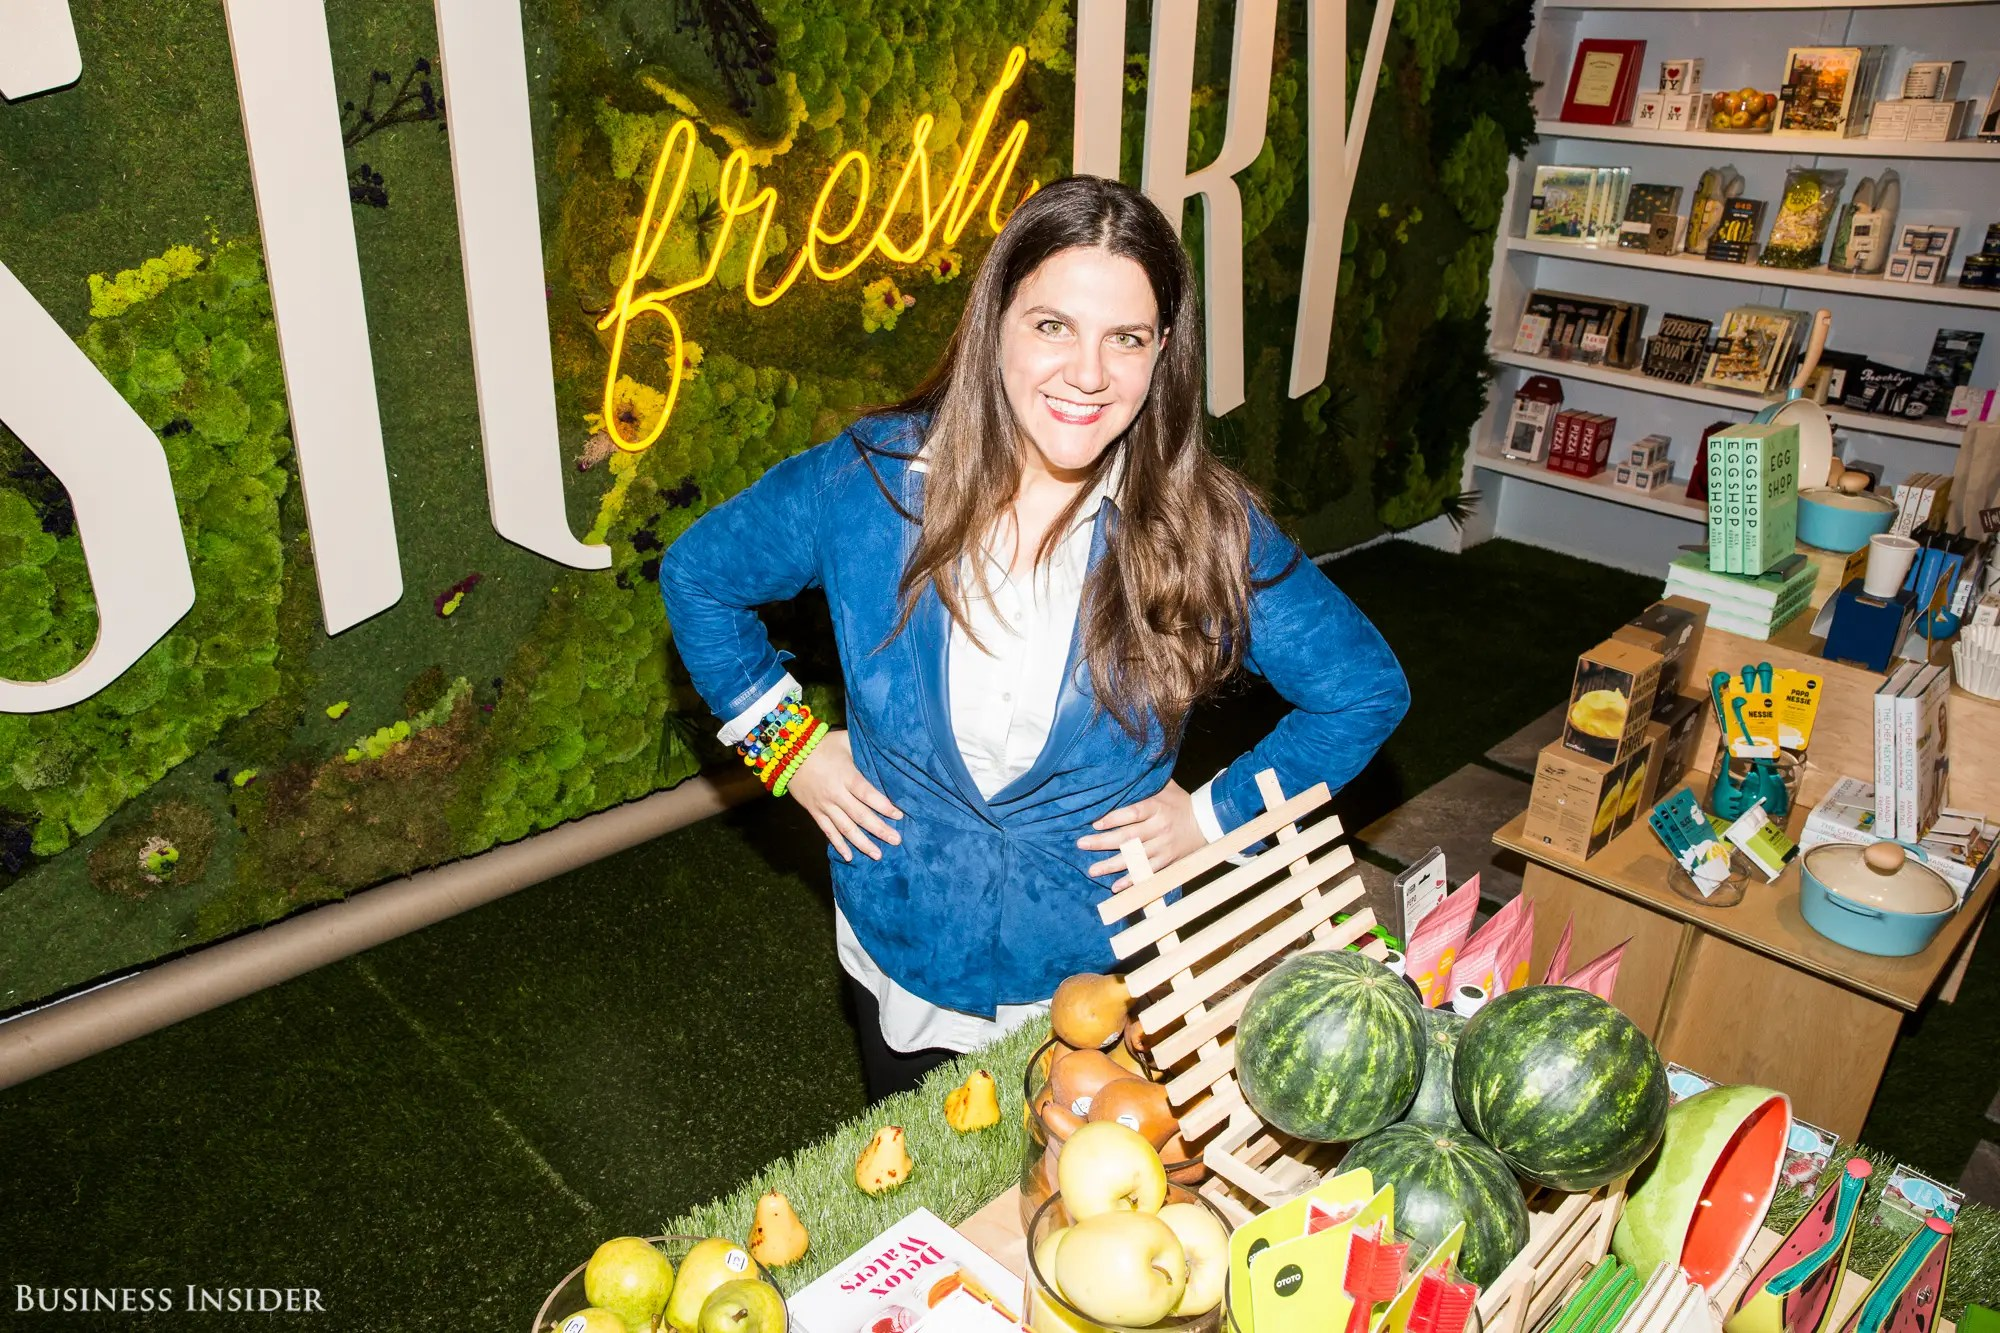 The partnership comes to life inside Story, a retail space that changes every three to eight weeks like a gallery. It was founded by consultant Rachel Shechtman in 2012.